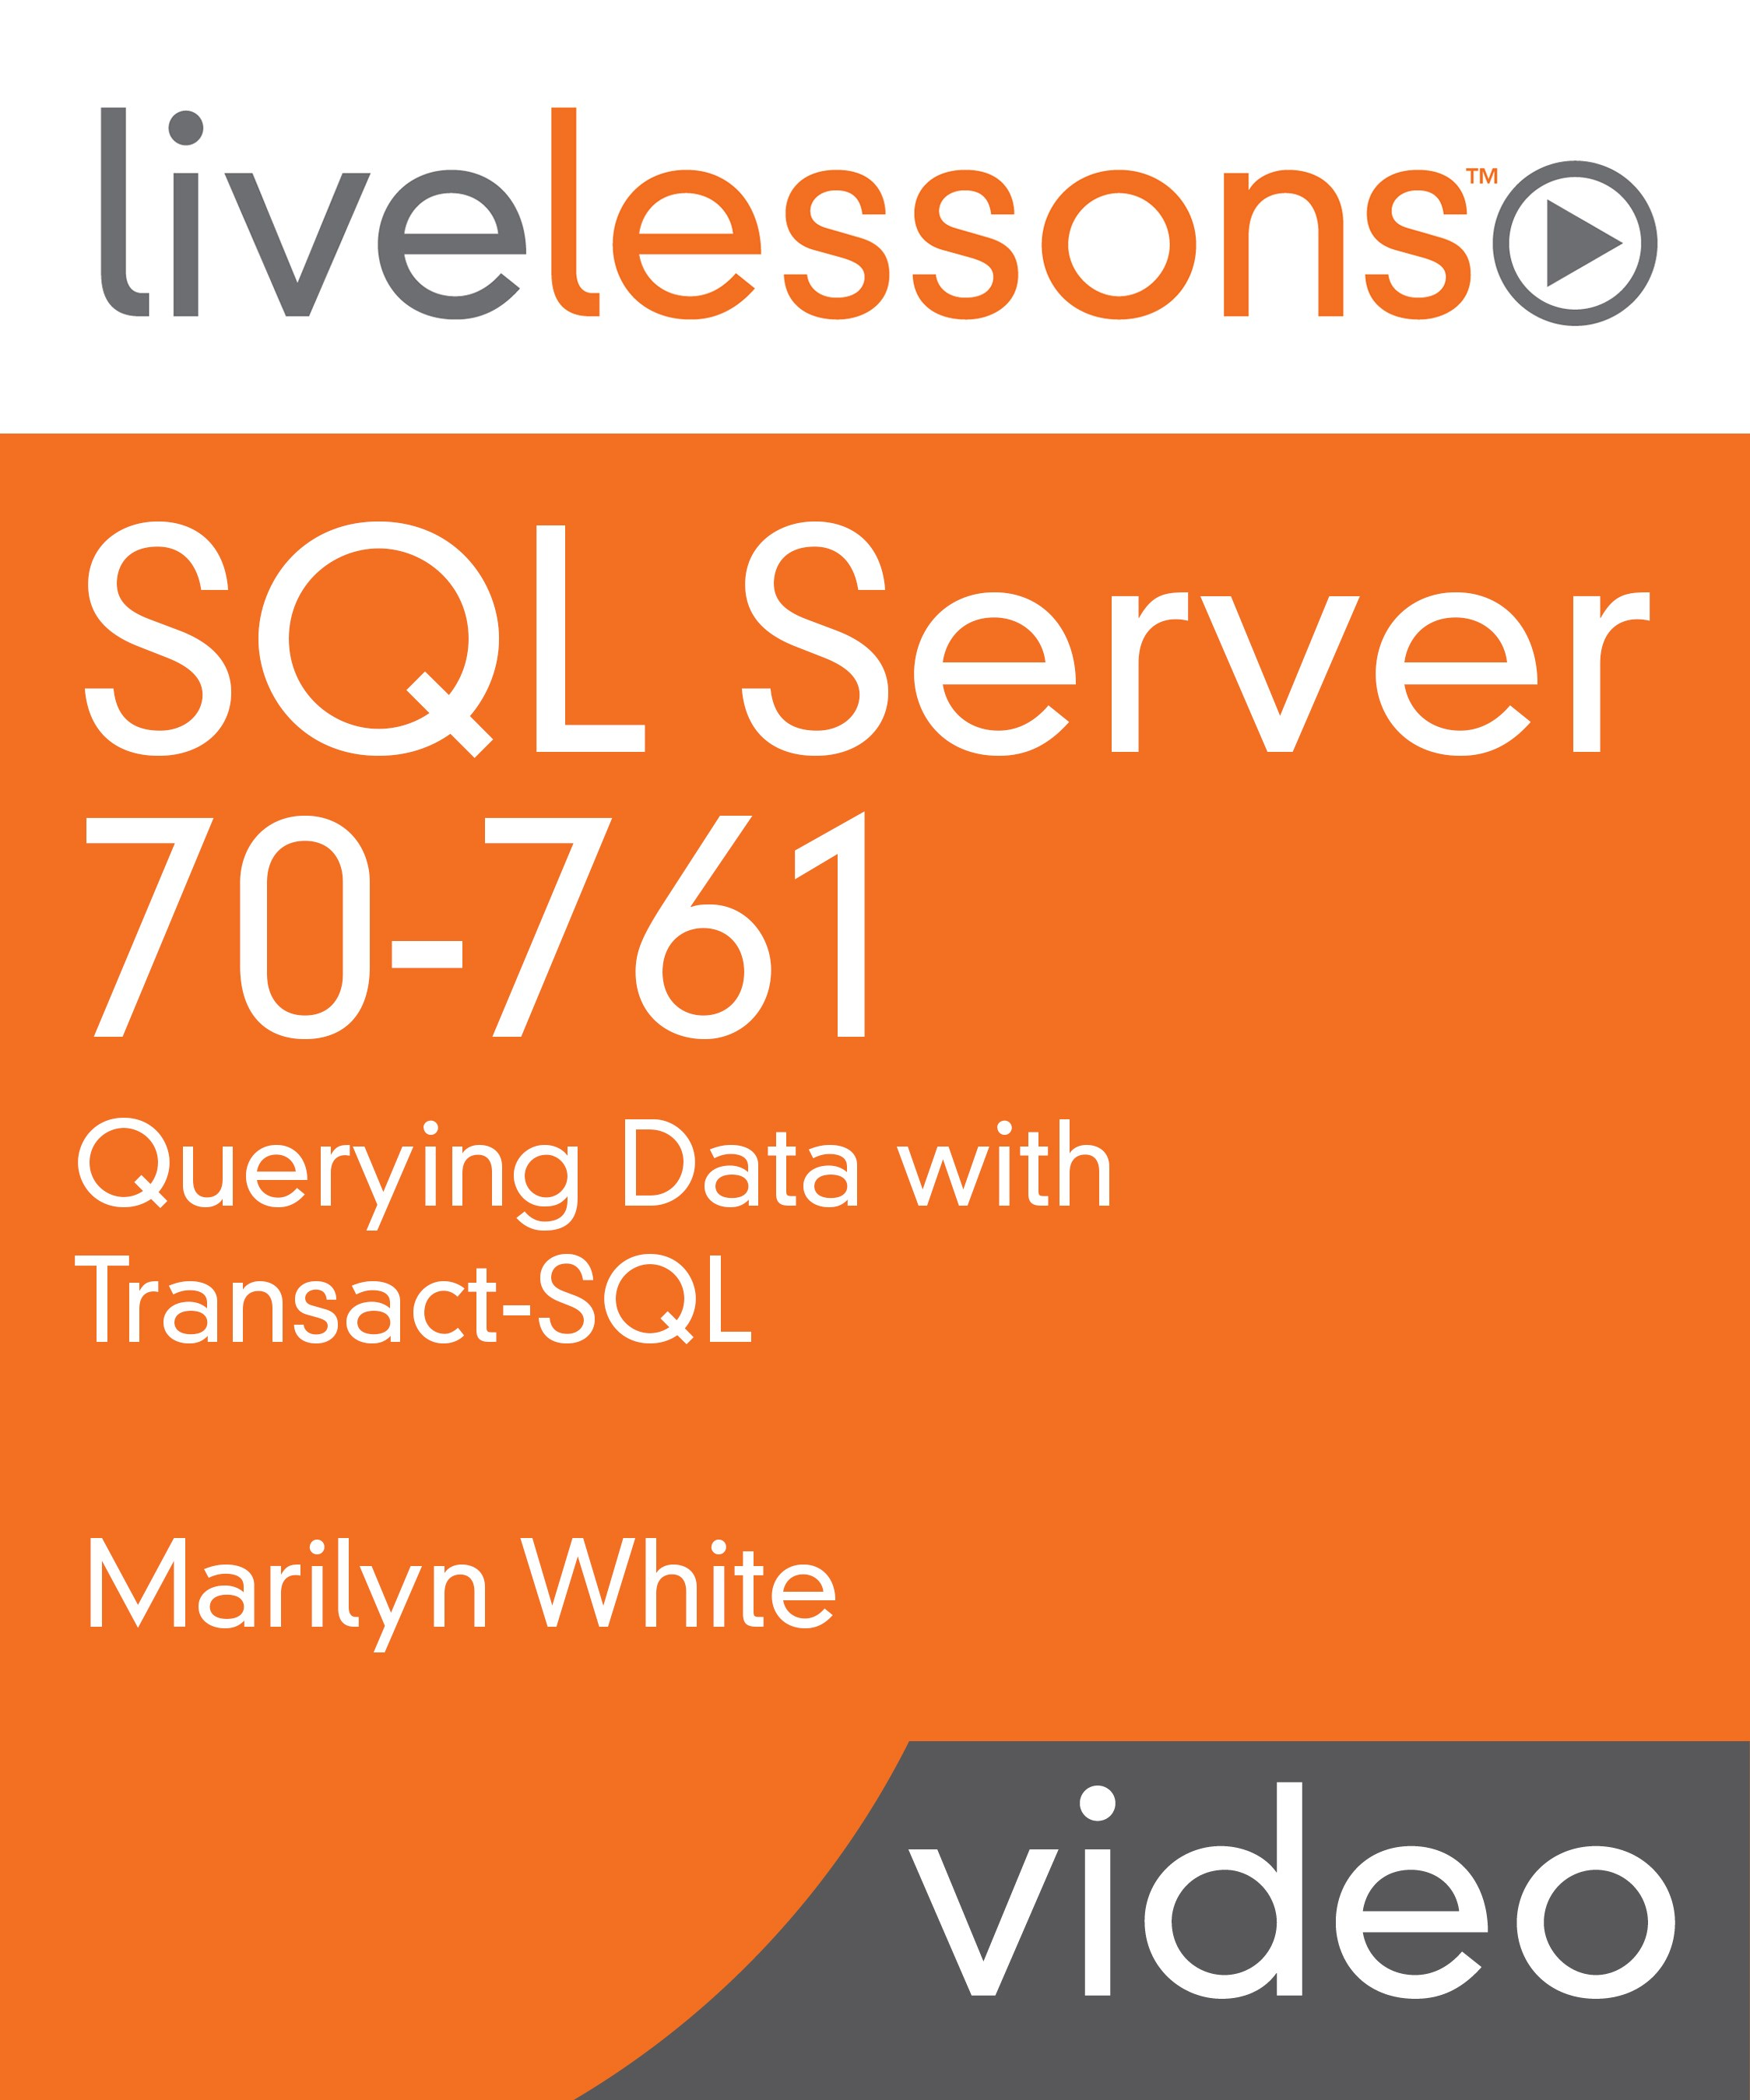 SQL Server 70-761: Querying Data with Transact-SQL LiveLessons